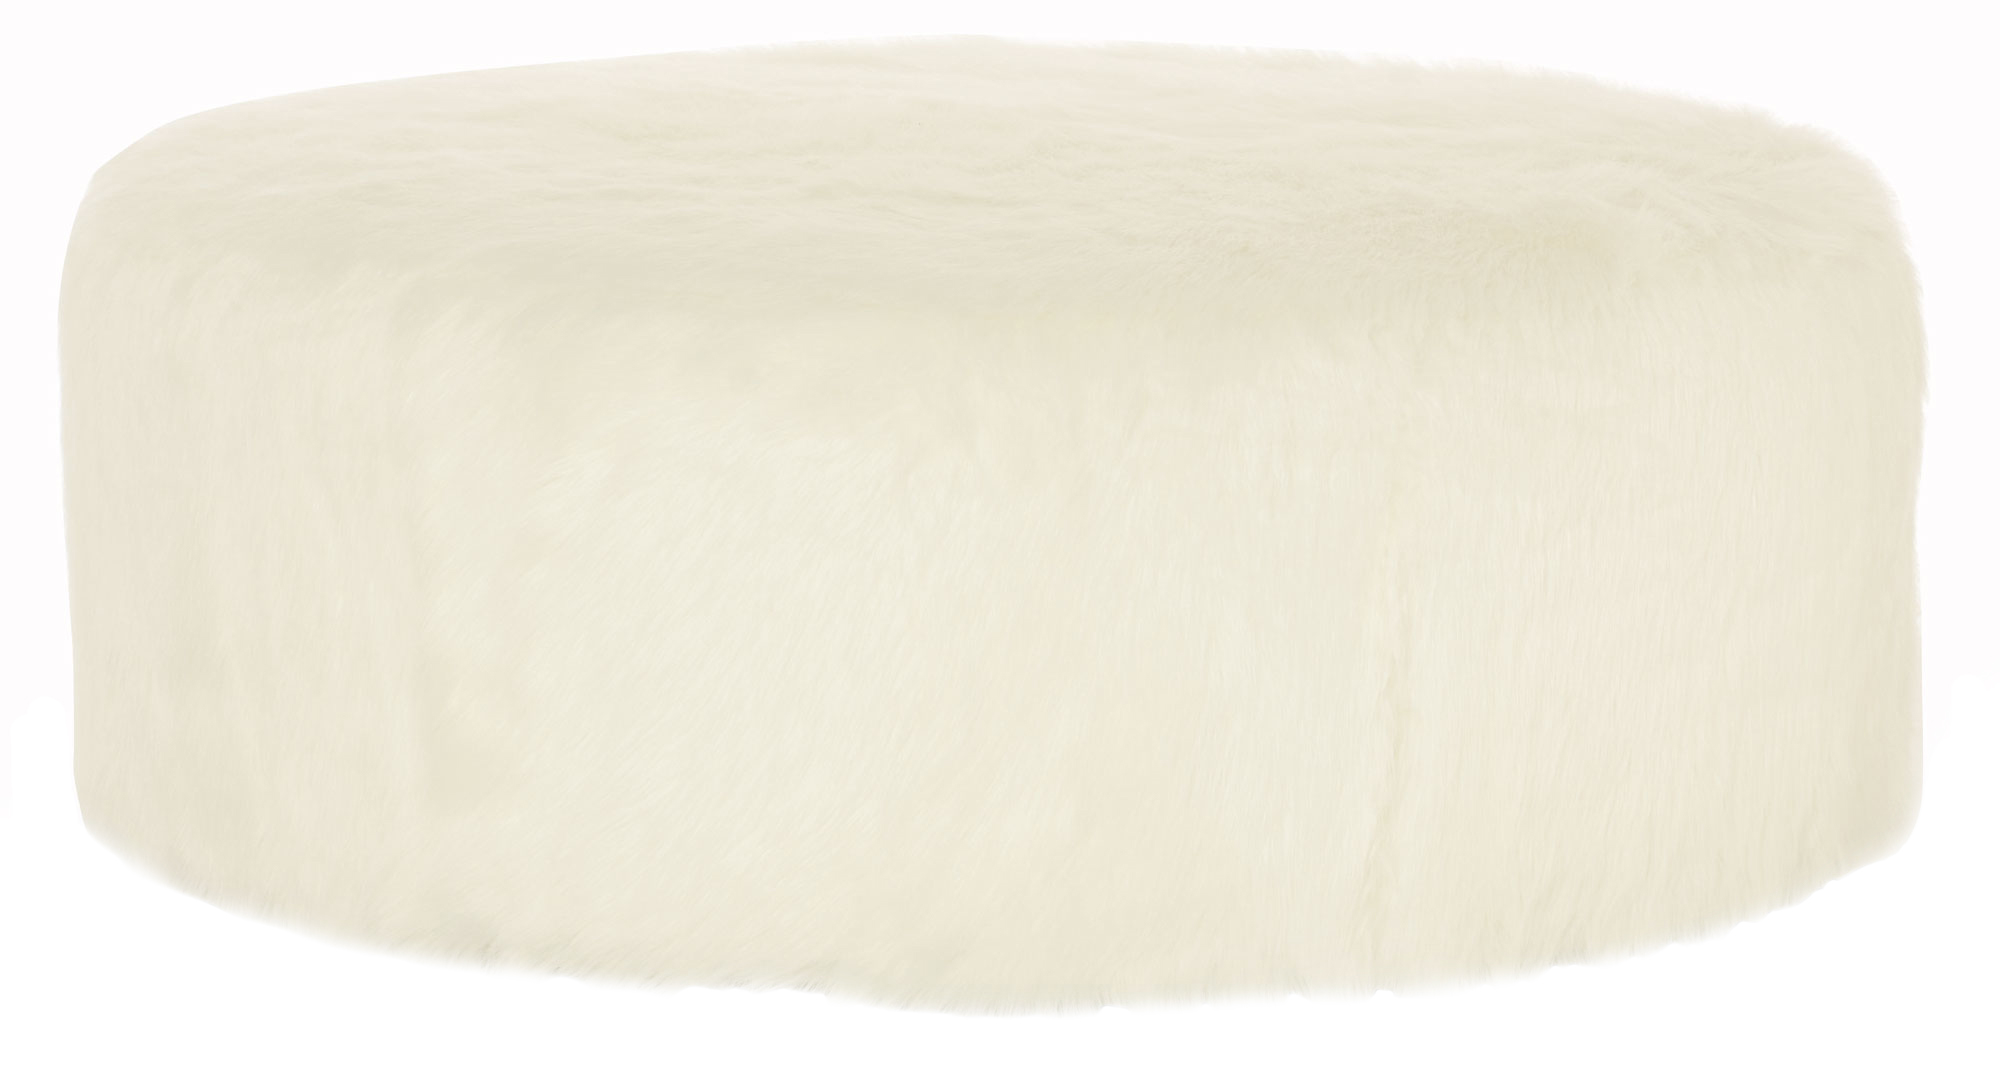 of modern rent this kind rentals products ottoman round a furniture two tufted beige